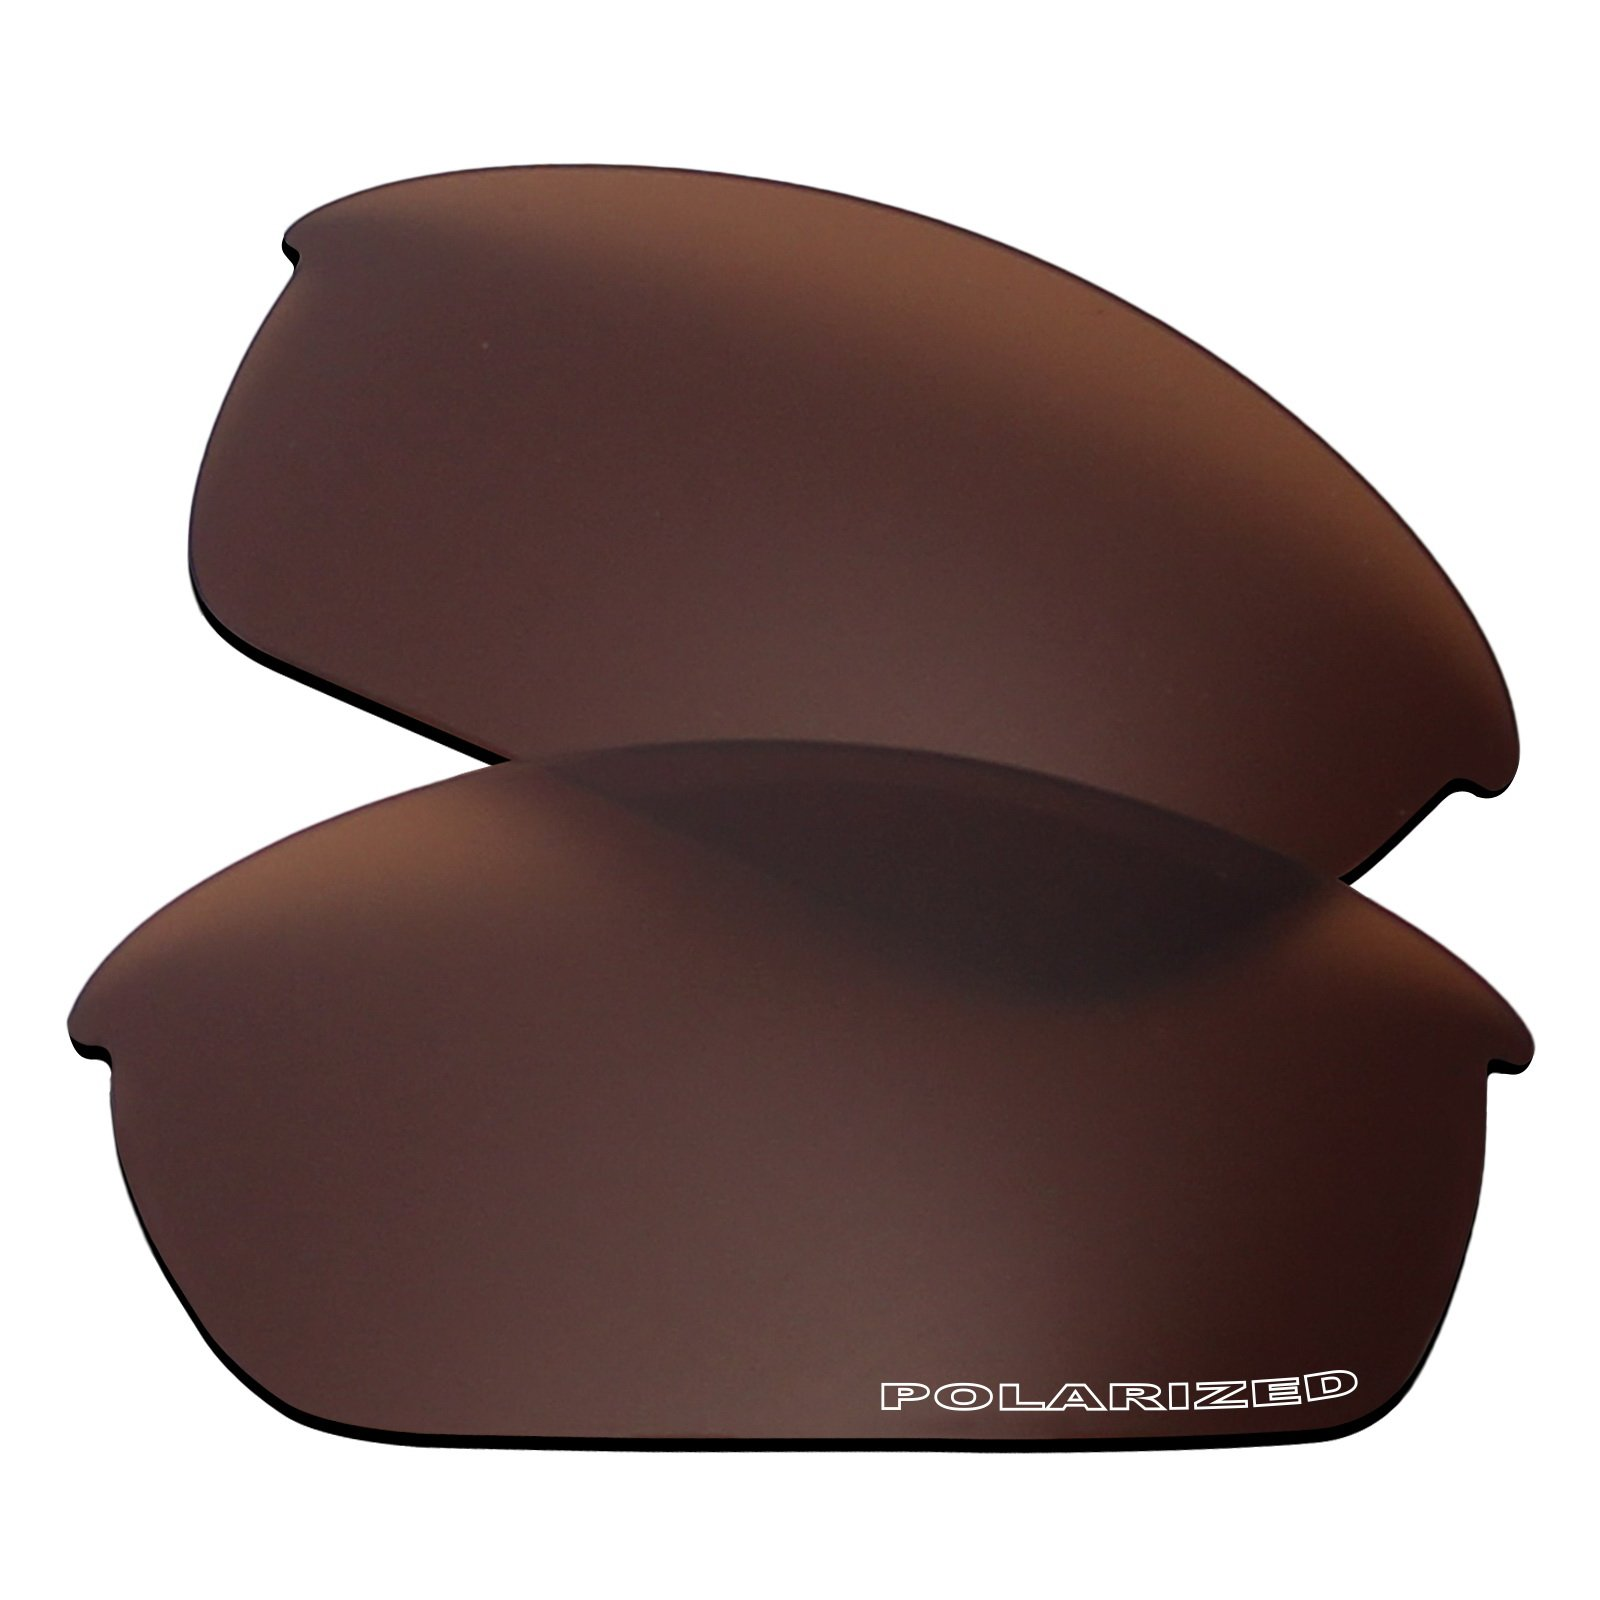 New 1.8mm Thick UV400 Replacement Lenses for Oakley Flak Jacket Sunglass - Options by Highprecisionoptics